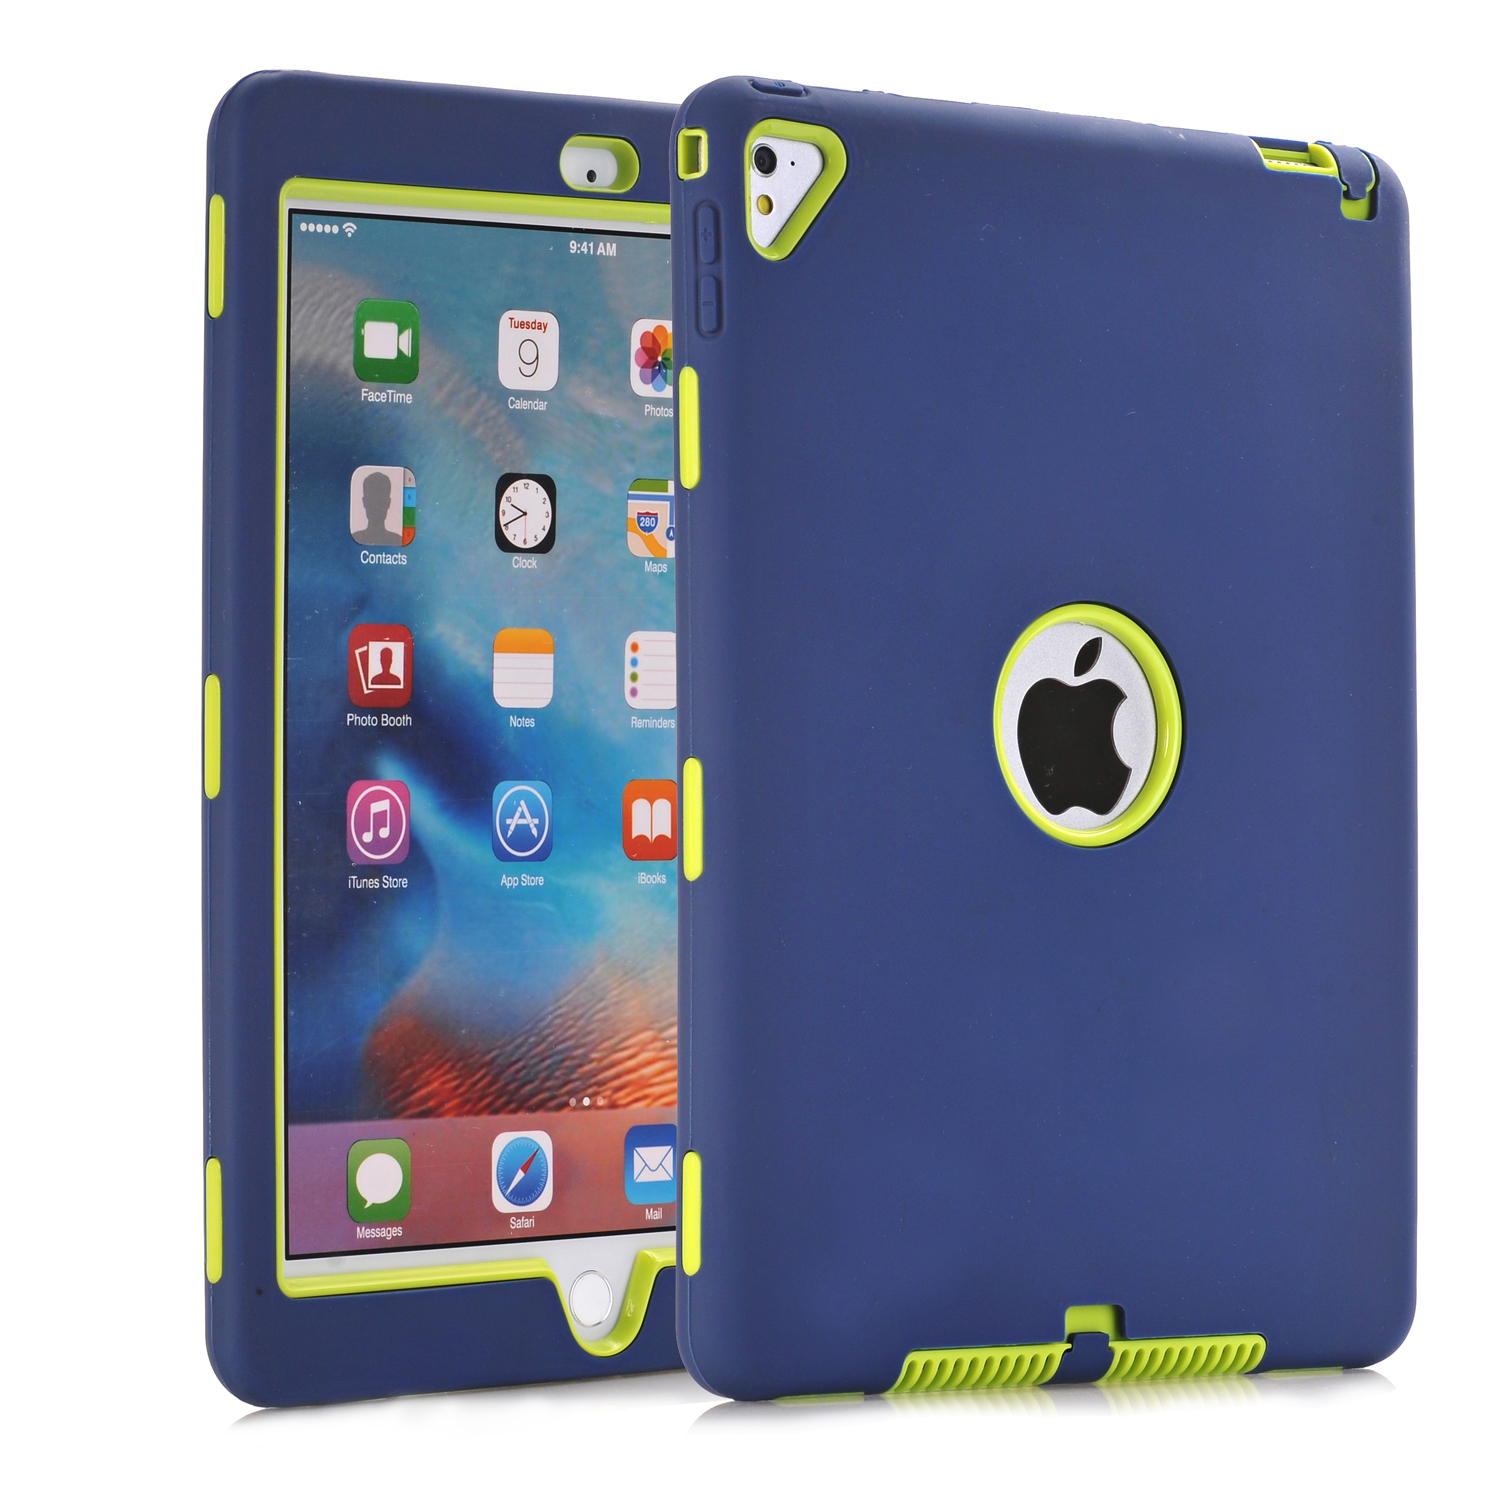 Til iPad Pro 9.7, til iPad Air 2-kasse nethinde Børn Baby Safe Armor Stødfast Heavy Duty Silikone Hard Case Cover til iPad Air2